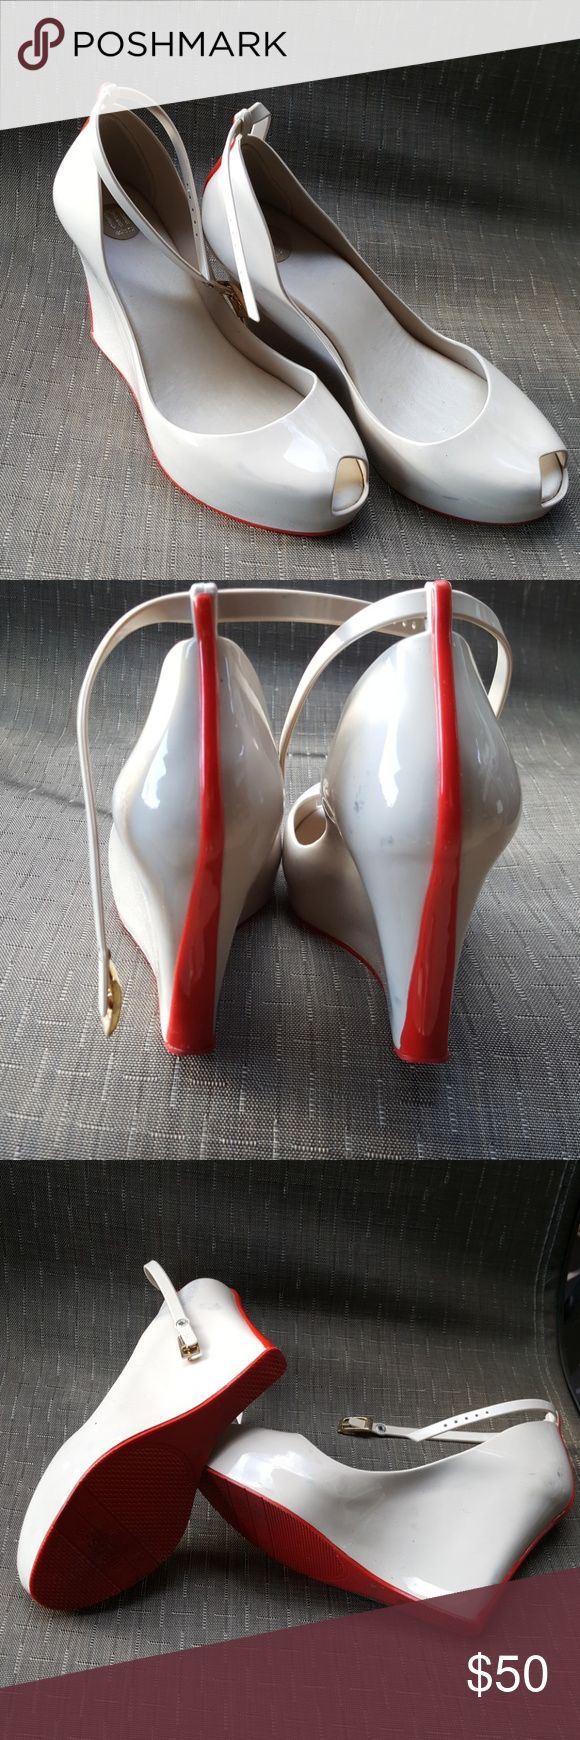 Wedge heels Melissa Patchuli  wedge heels. Beige color. Used. Made in Brazil. Red bottom. Melissa Patuchi Shoes Heels